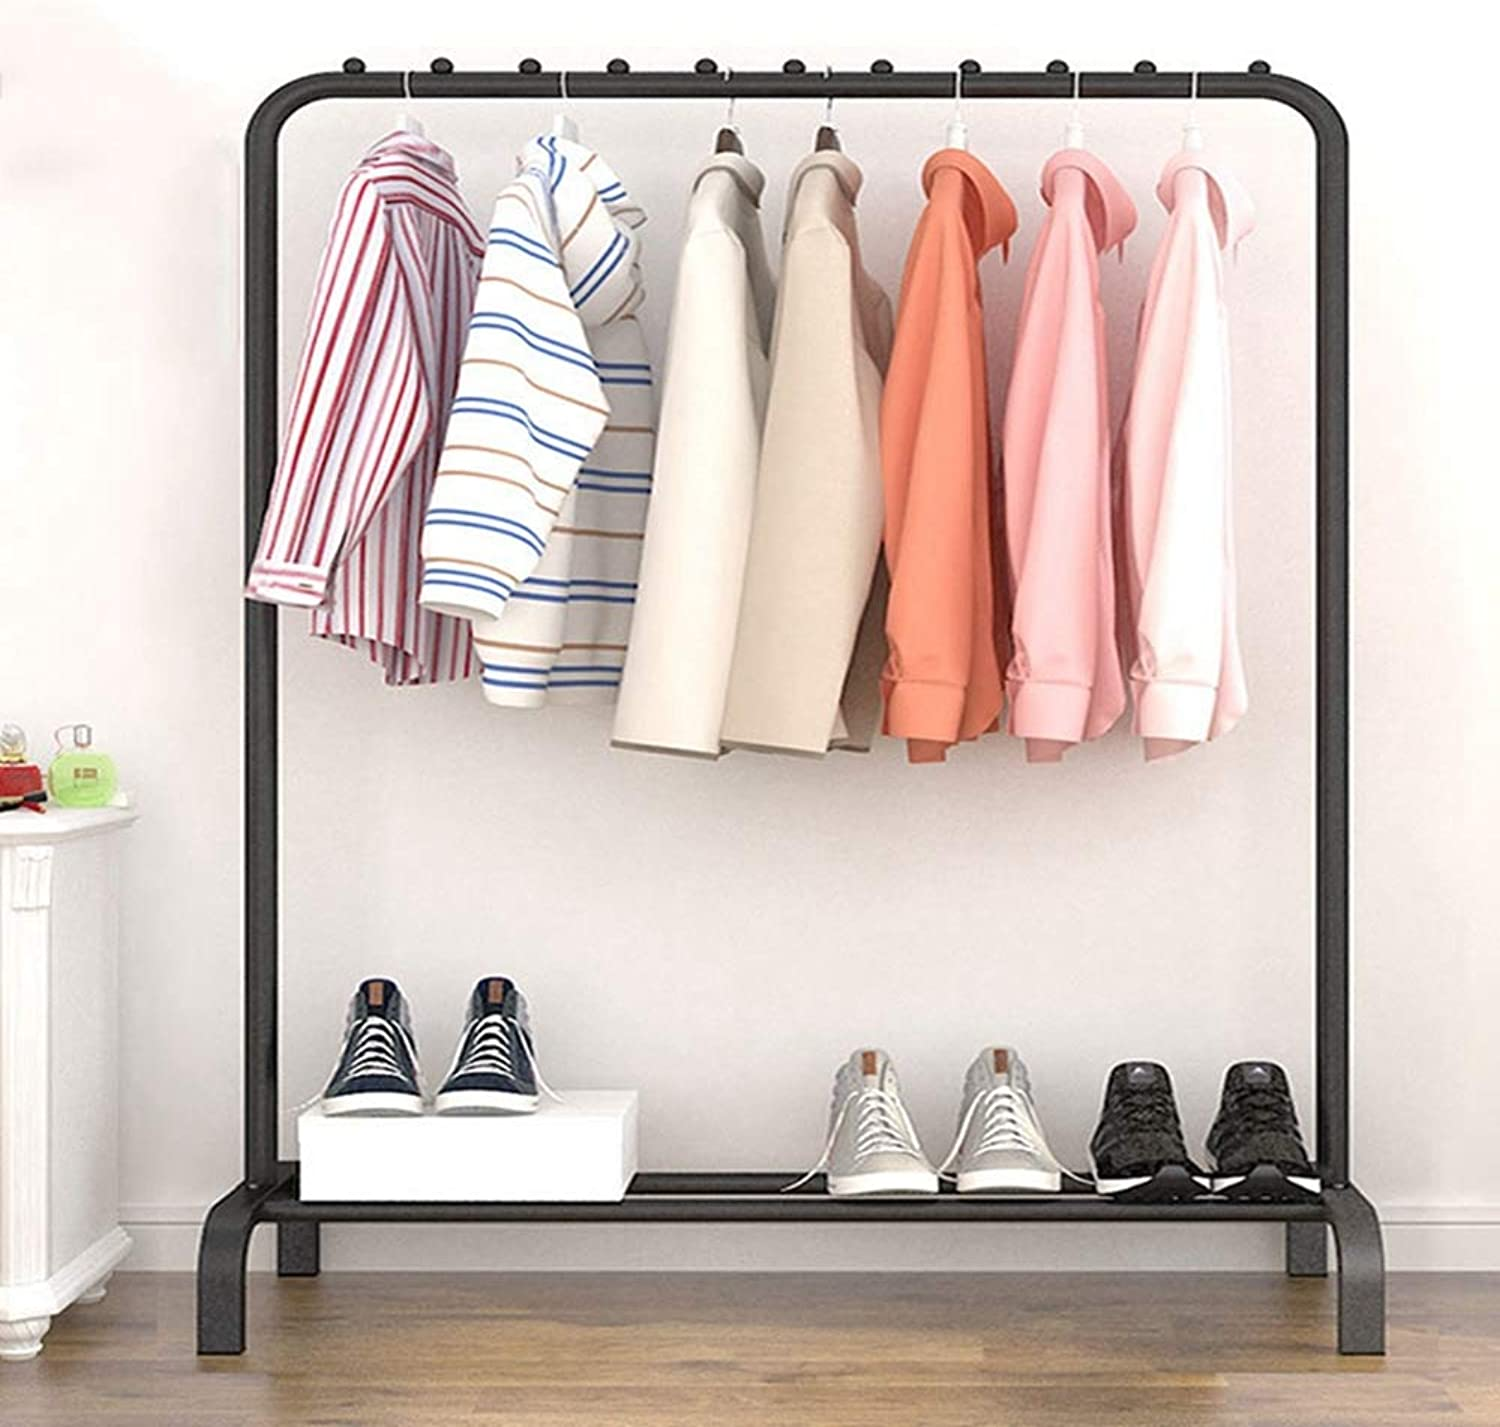 Sxuefang Coat Rack Coat Hat Rack Folding Single Rod Drying Rack Coat Rack Floor Coat Rack Clotheshorse Balcony Rack with Environmental Material with Simple Style